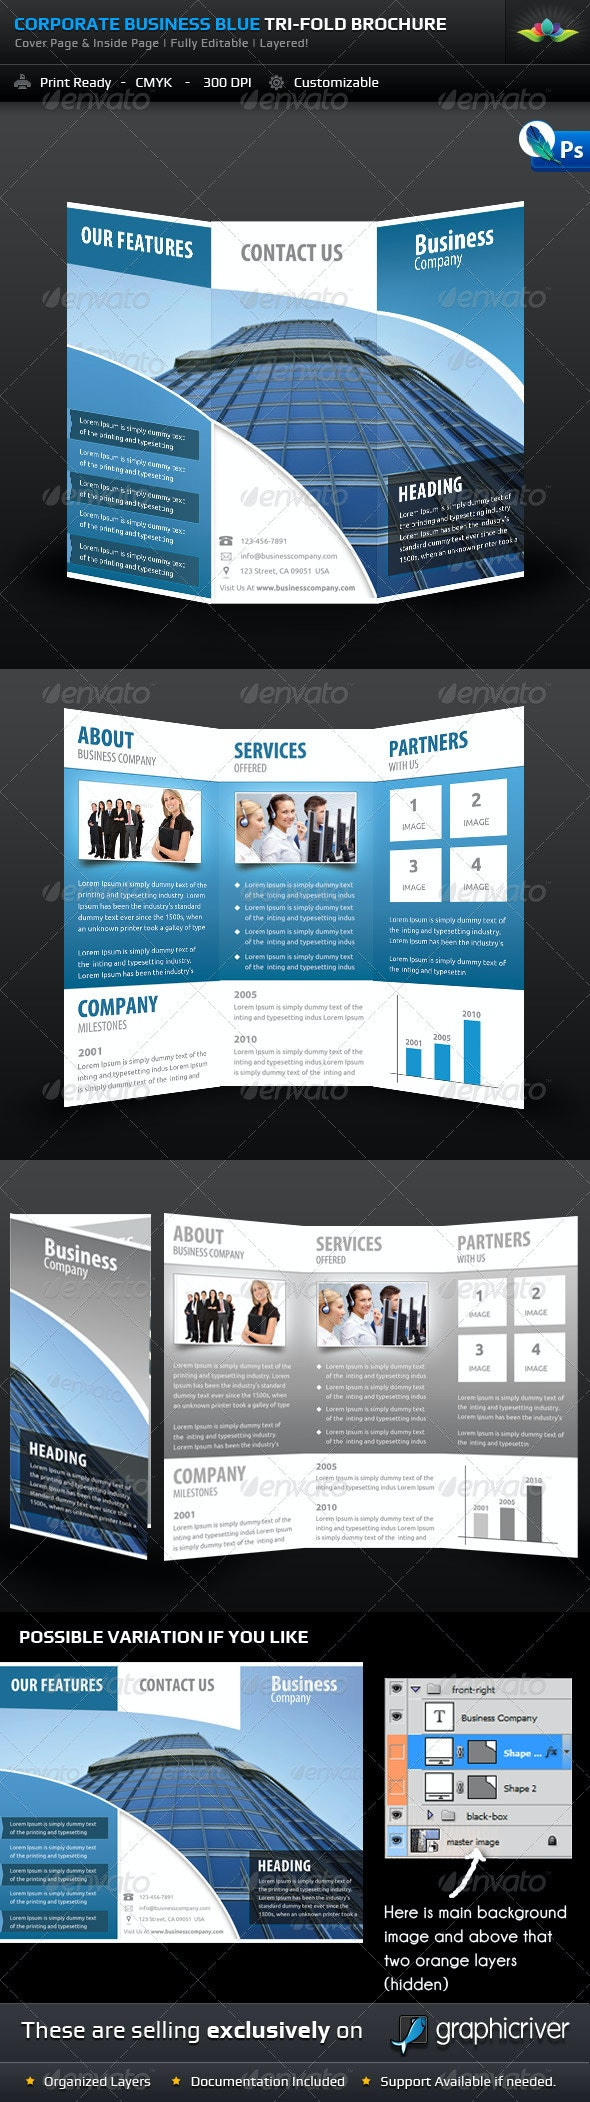 Corporate Business Blue Tri-Fold Brochure - Corporate Brochures